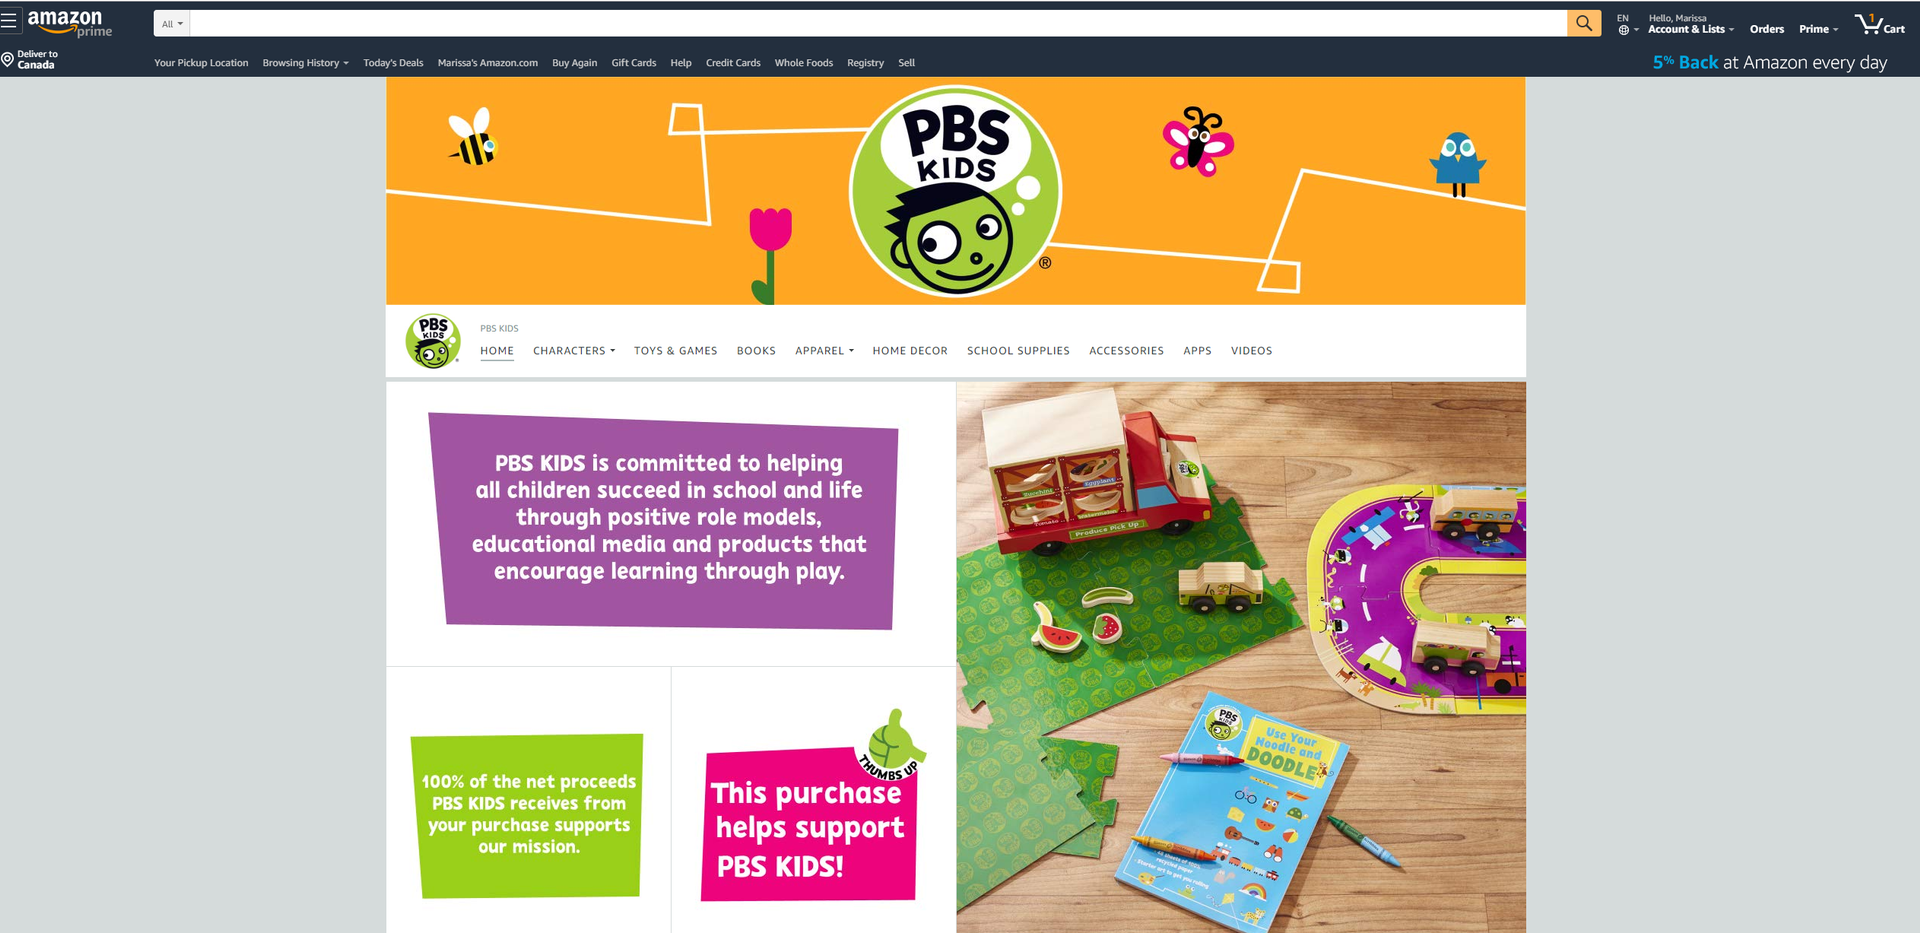 PBS KIDS Amazon Brand Page